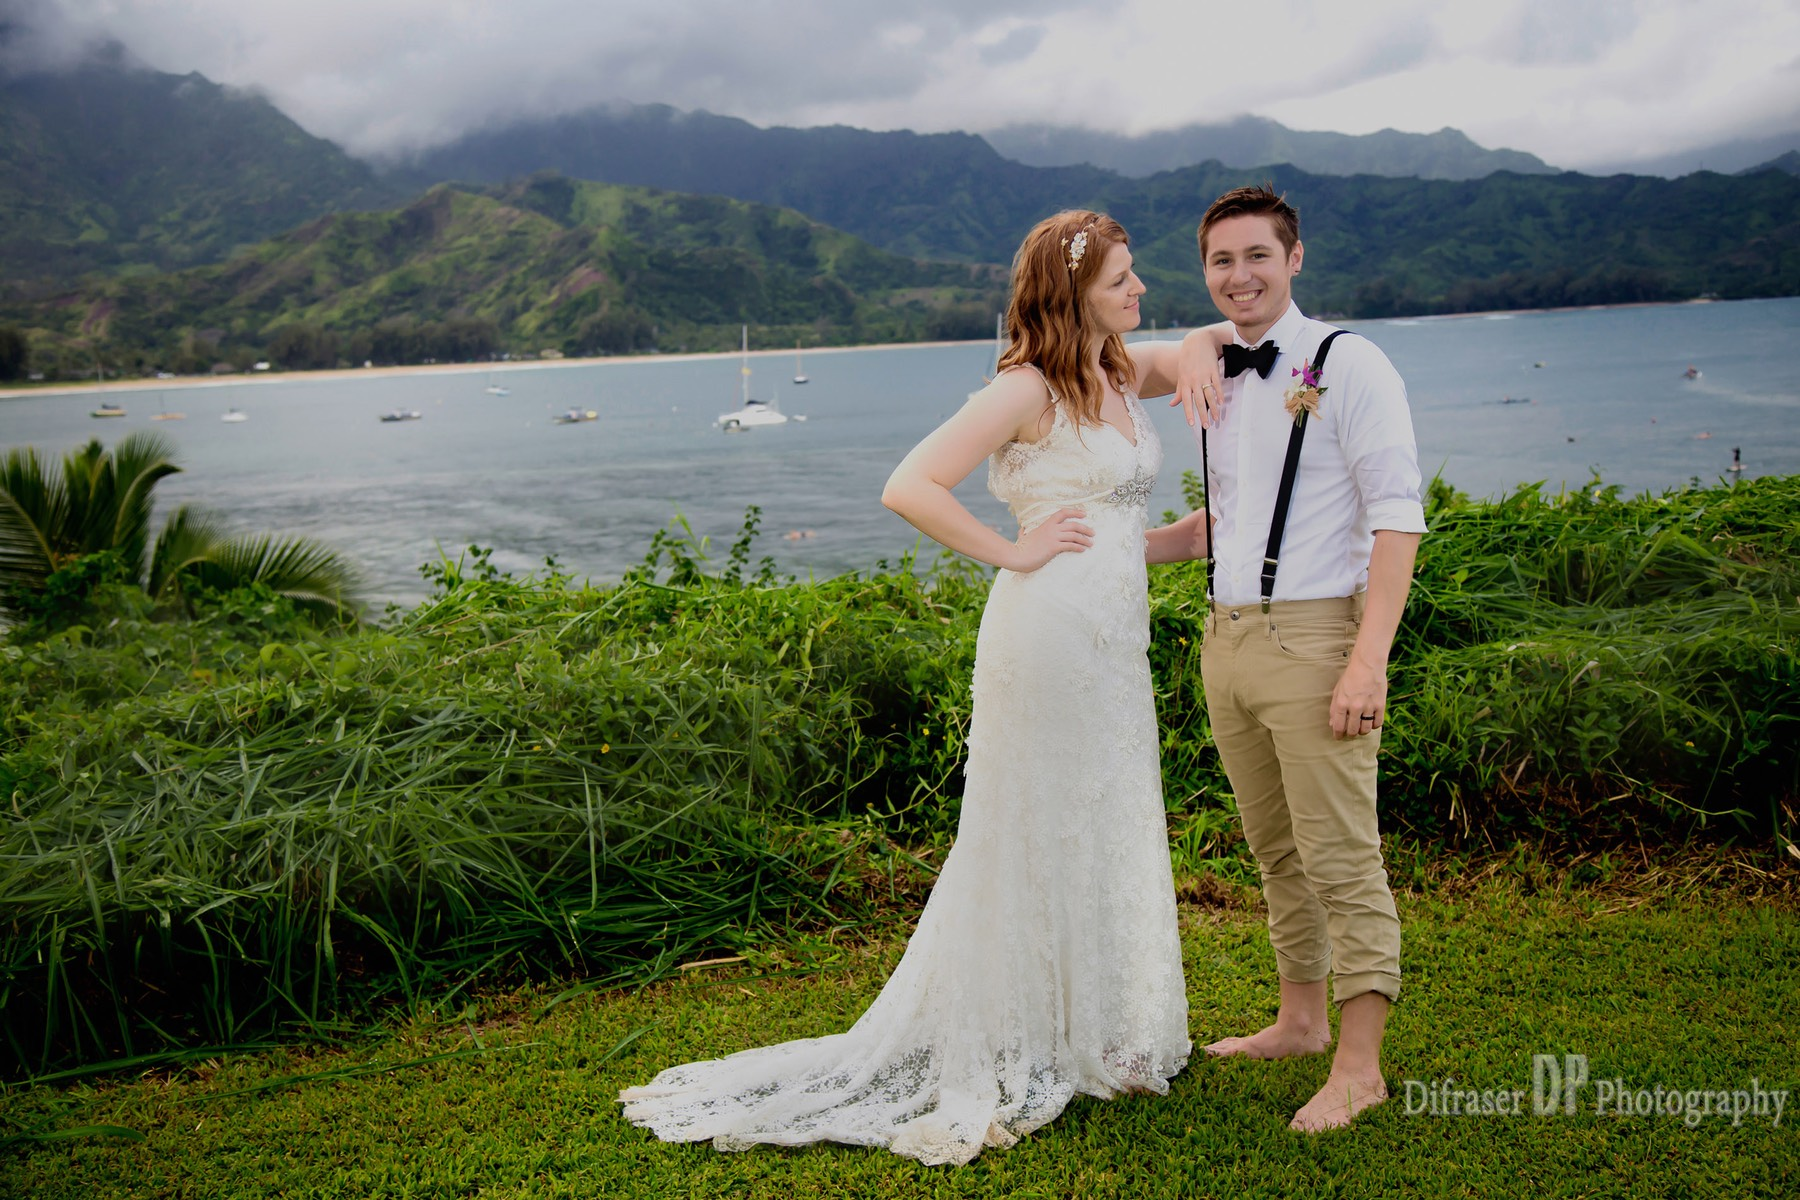 Kauai wedding videographer Hanalei Bay Difraser photography